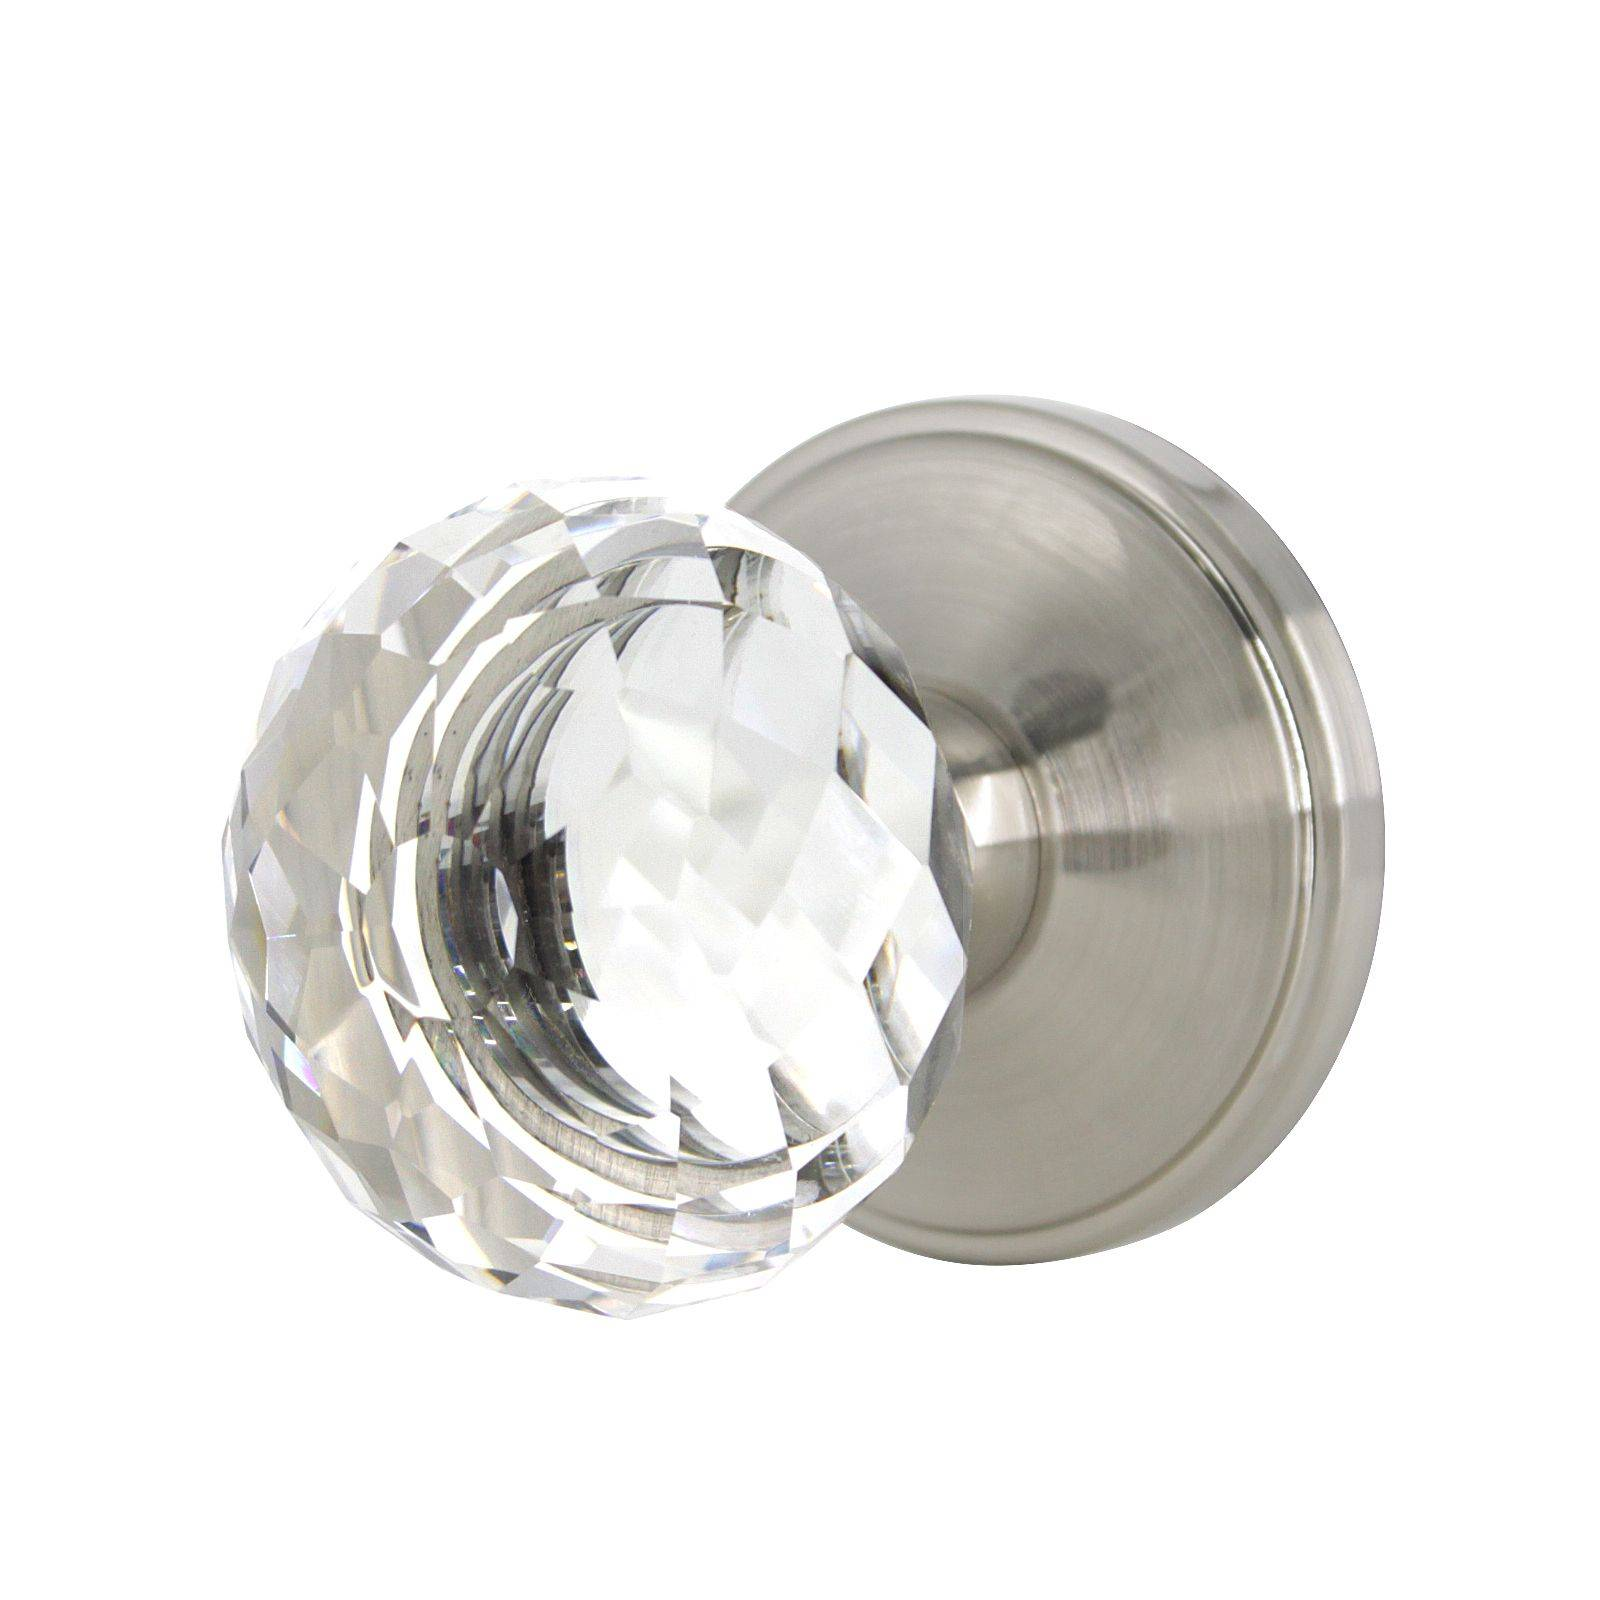 Glass Globe Doorknob New Probrico Door Knob Locks